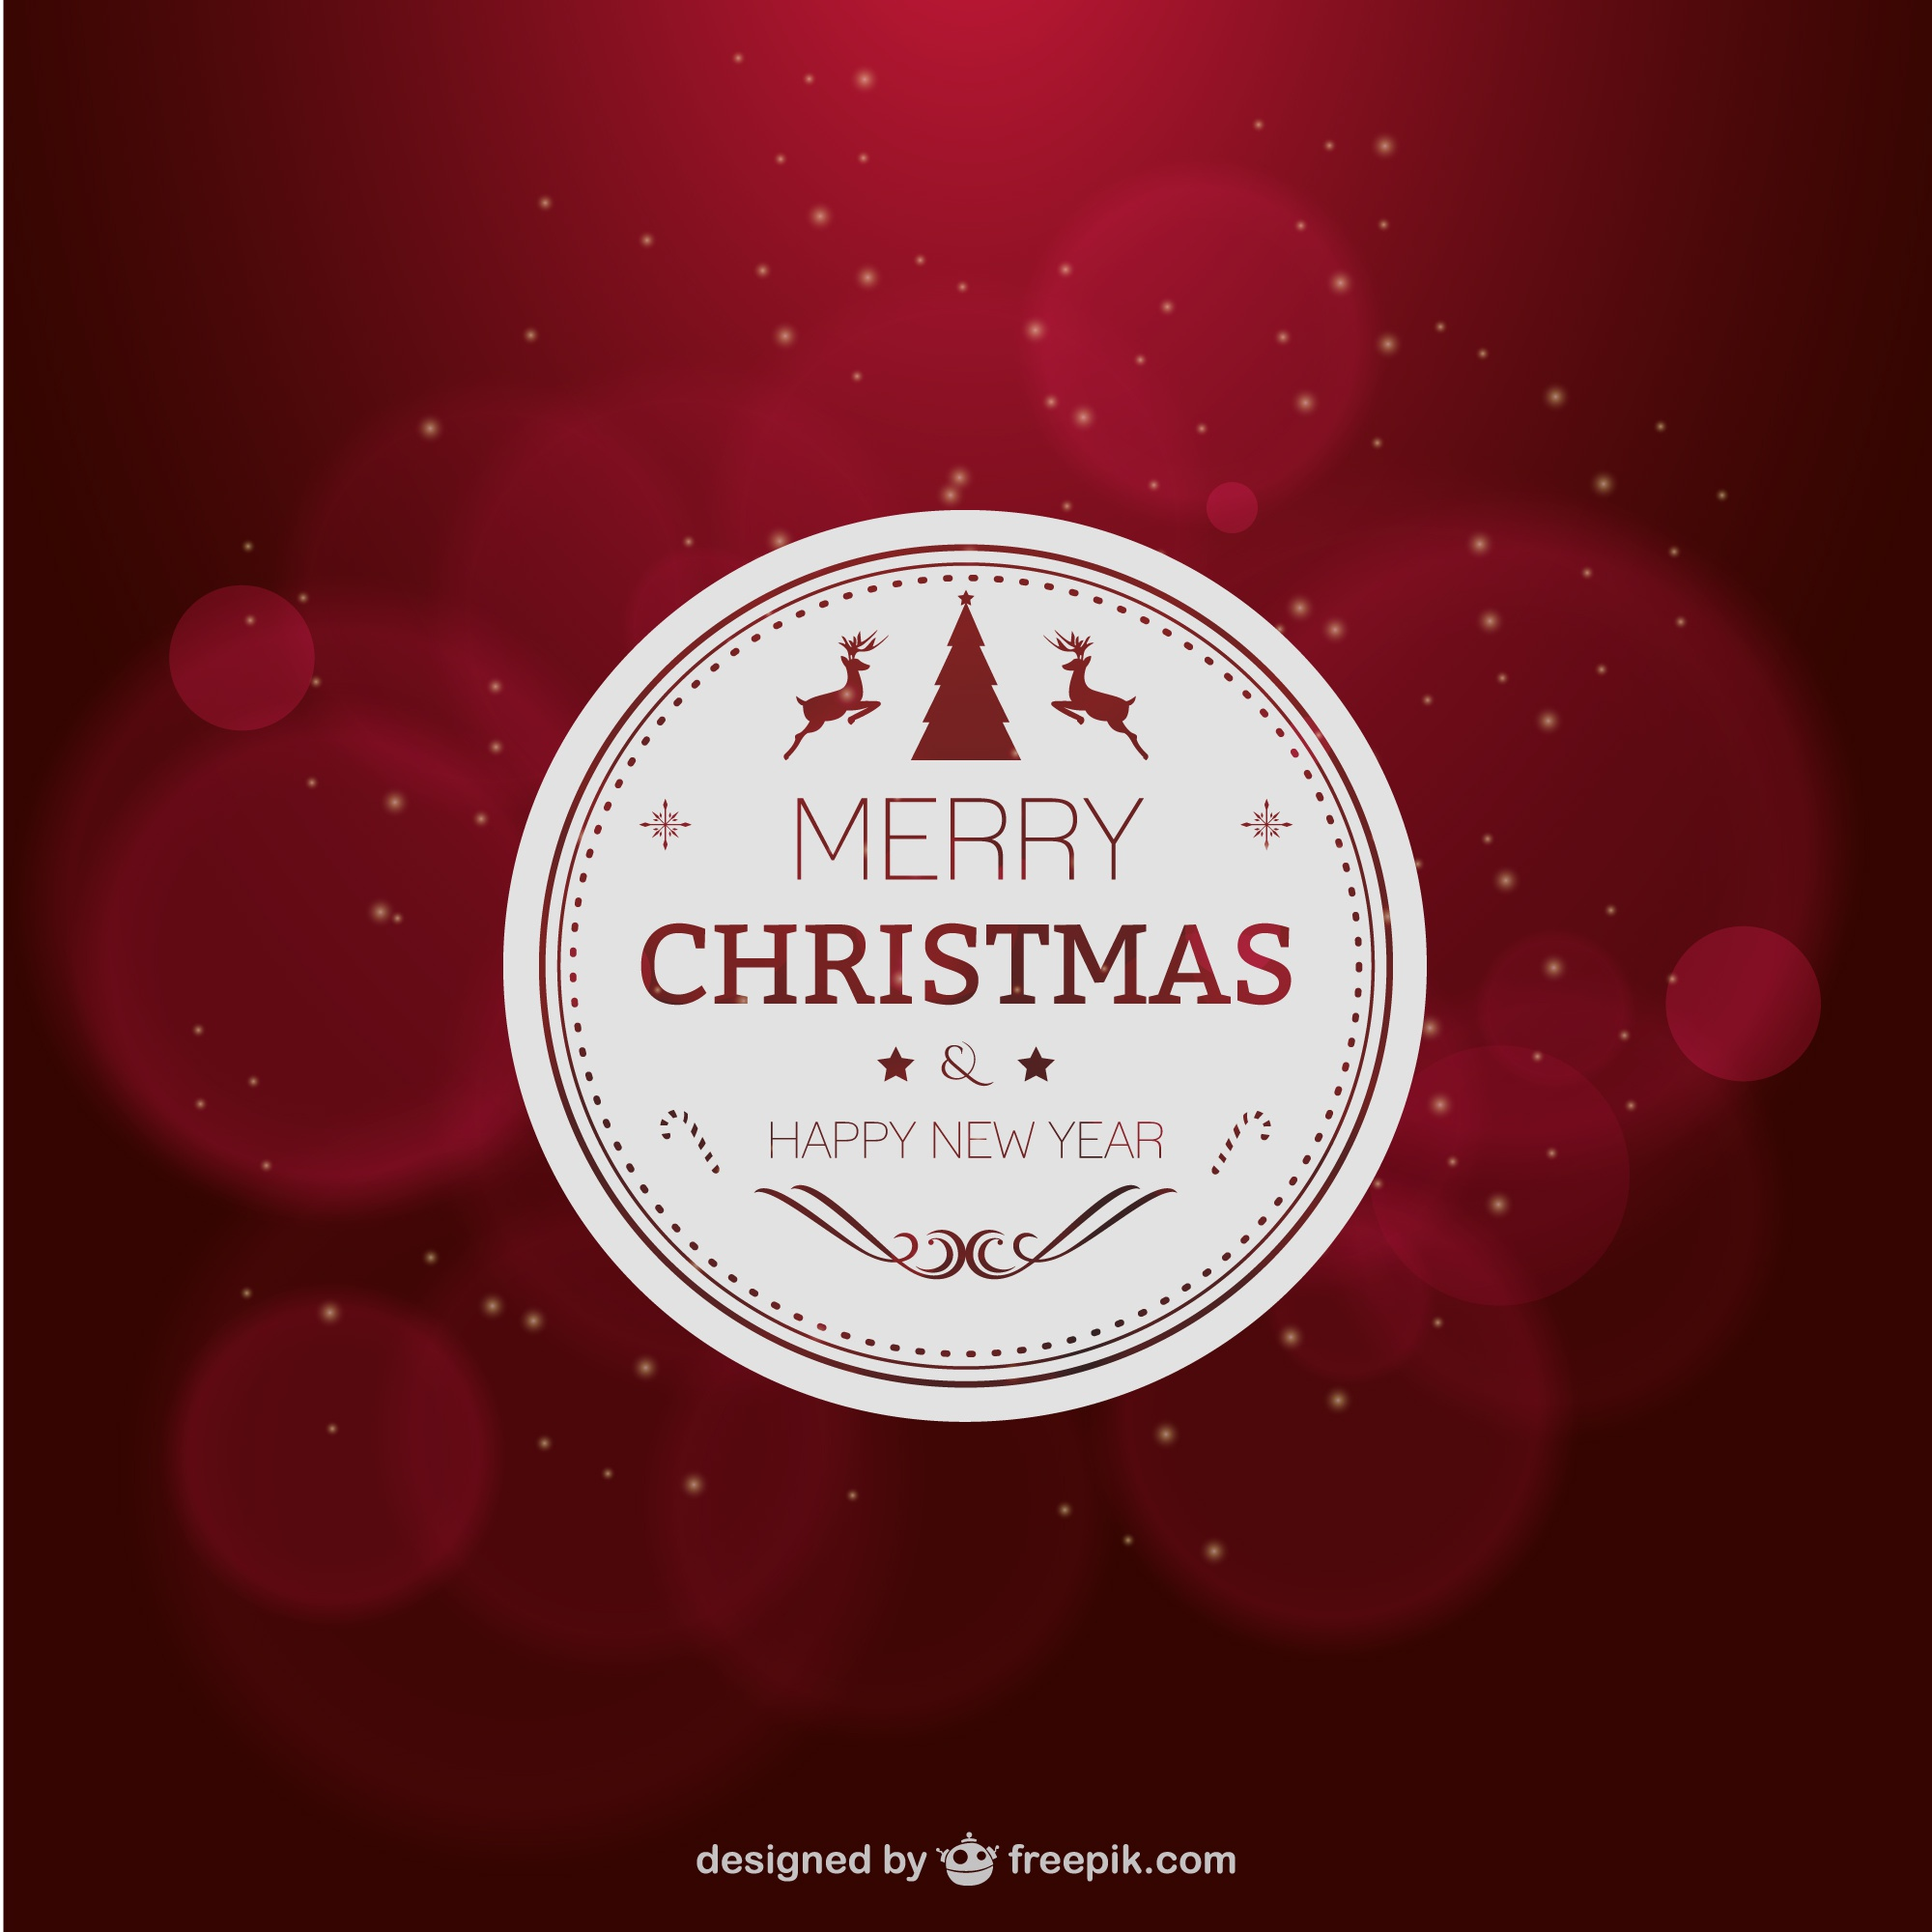 Elegant red Christmas card